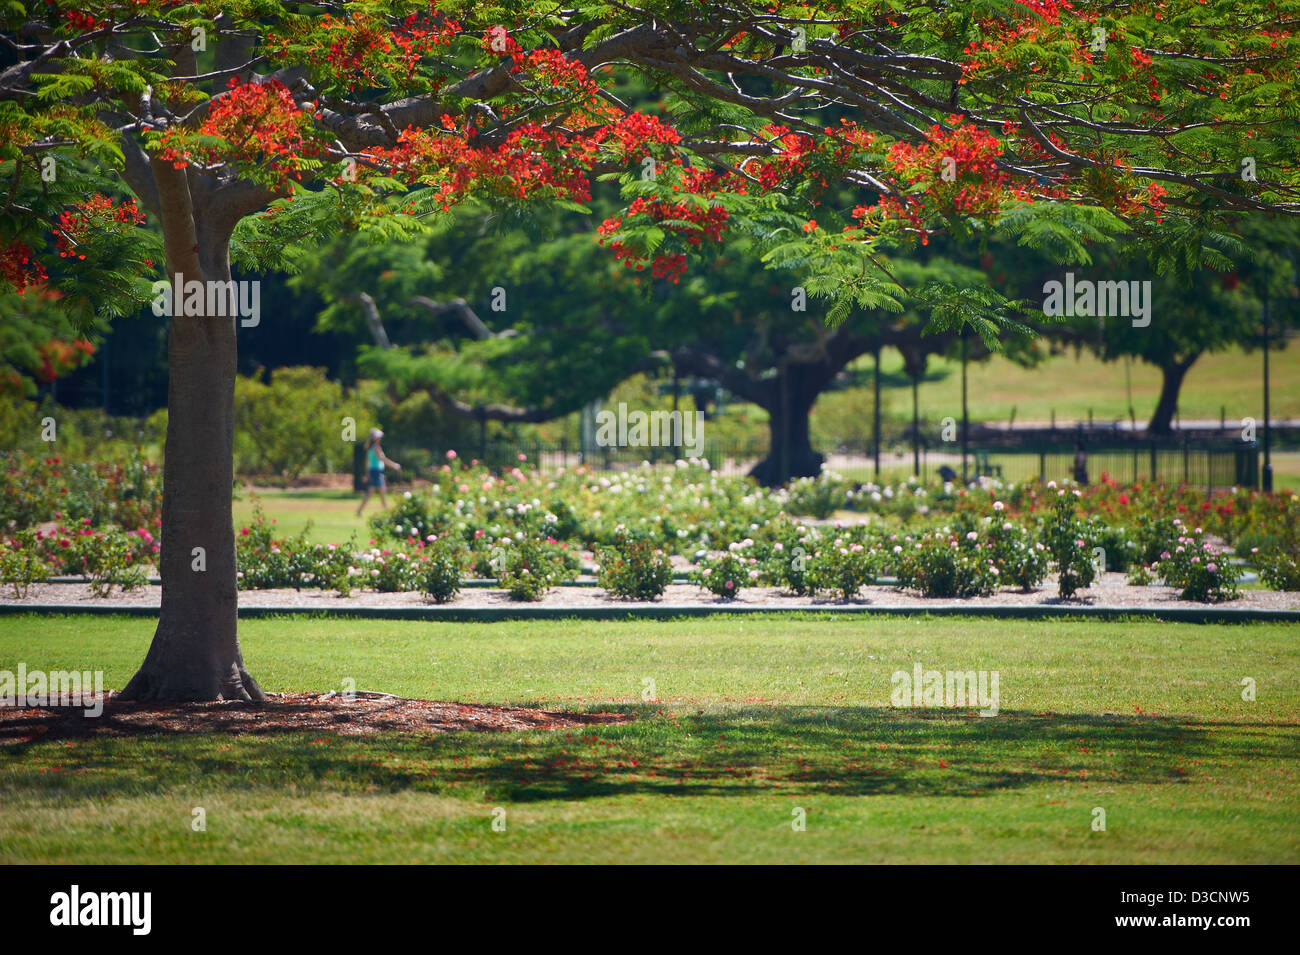 New Farm Park, QLD Australia Stock Photo